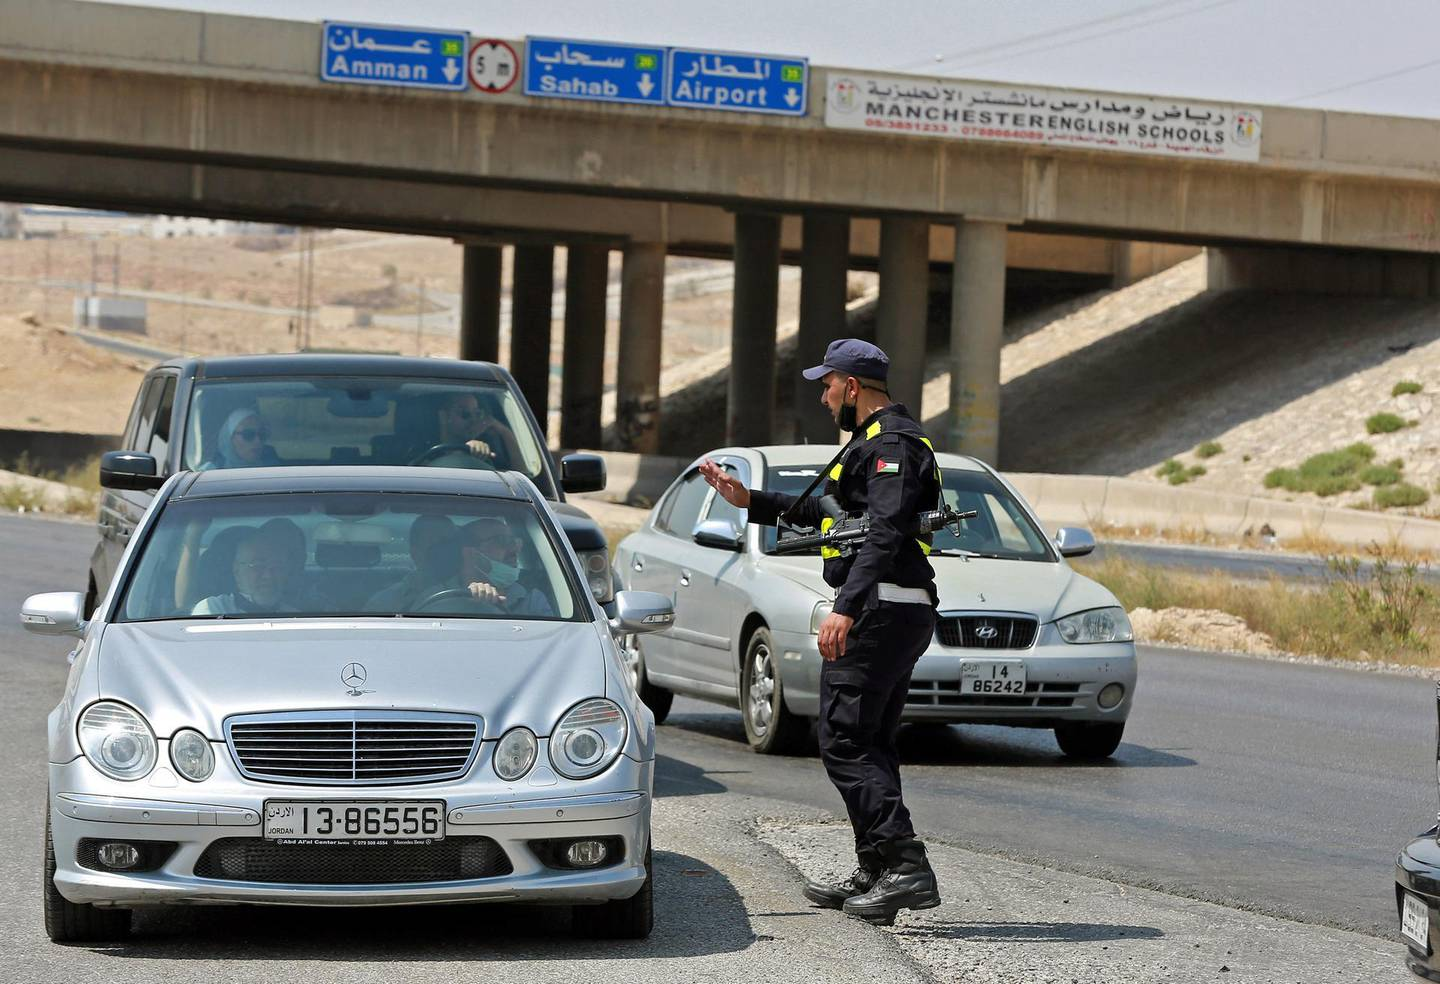 """A member of Jordanian security forces stops cars as the police and army close-off the area surrounding the site of an explosion at a military munitions depot in the city of Zarqa, 25 Km (15 miles) east of the capital Amman, on September 11, 2020. - A huge blast rocked a Jordanian military munitions depot early sparking a large fire, but the army said there were no casualties at the base situated in an uninhabited area, adding in a statement that the explosion was """"due to high temperatures provoking a chemical reaction in a shell"""". (Photo by Khalil MAZRAAWI / AFP)"""